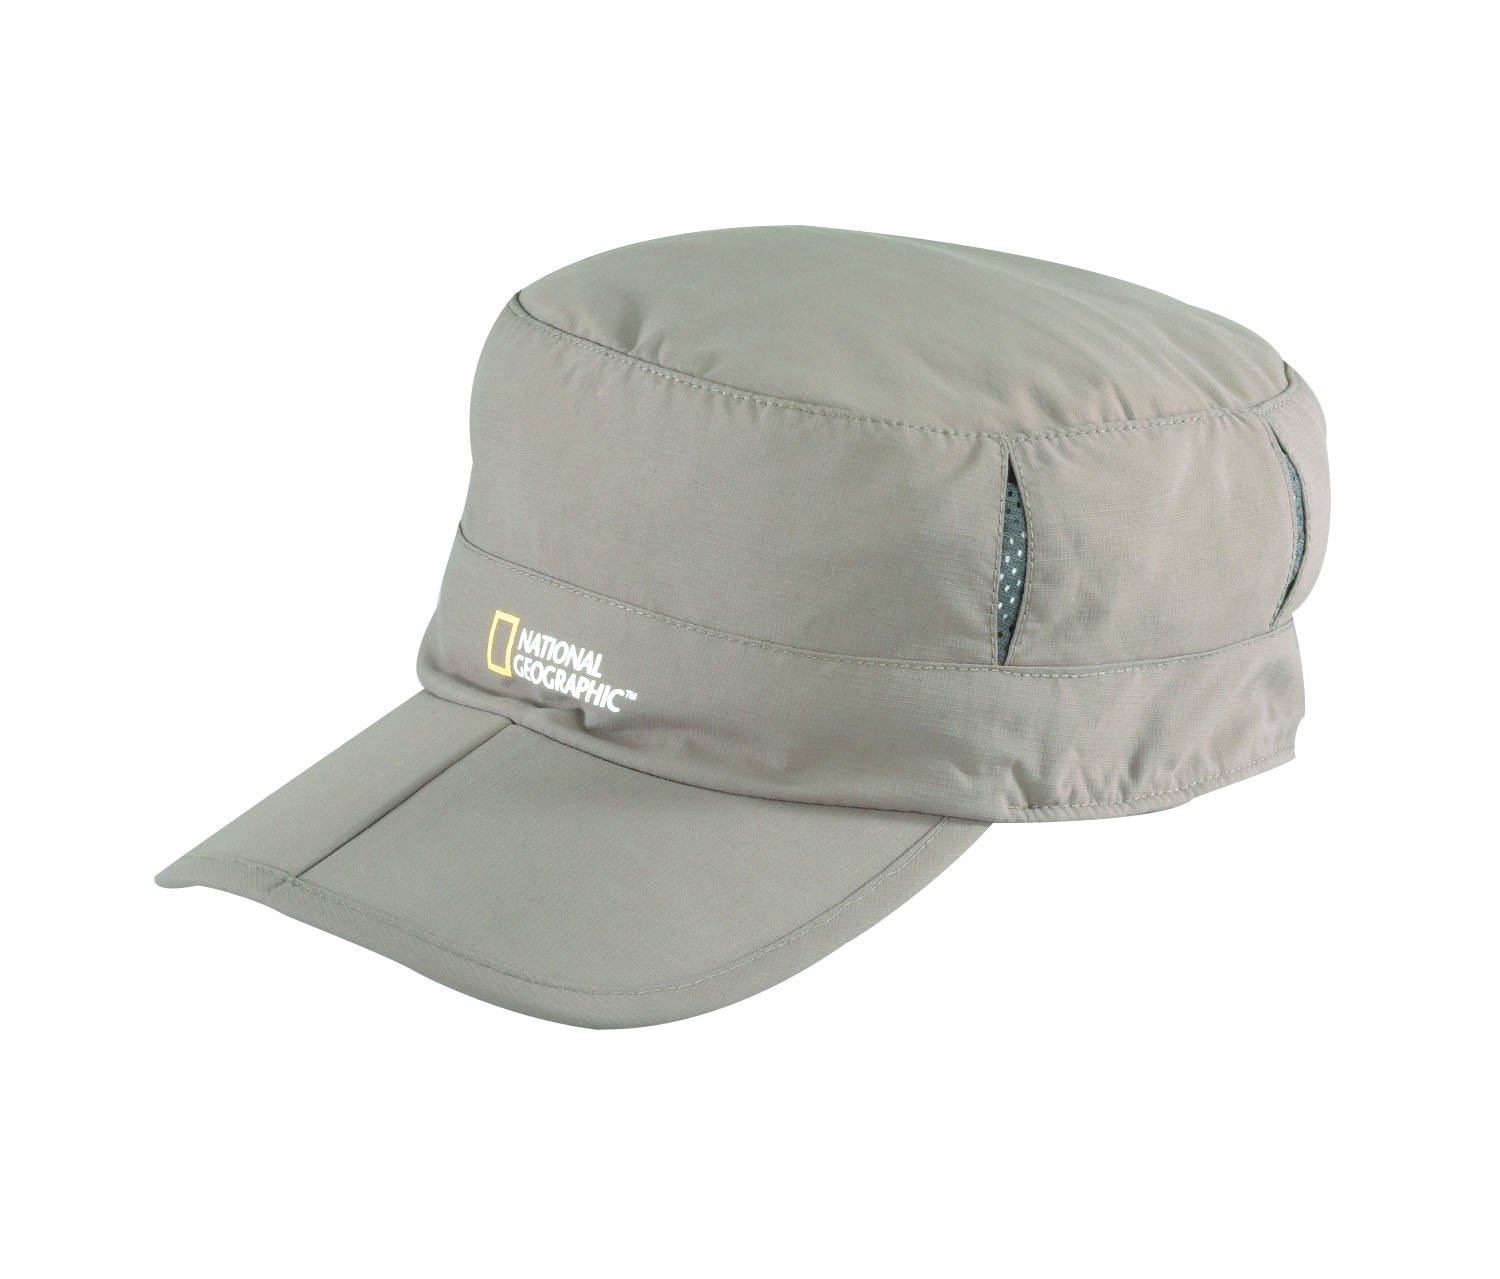 National Geographic Men's Back Pocket Cap (Green) 6283936OSFM